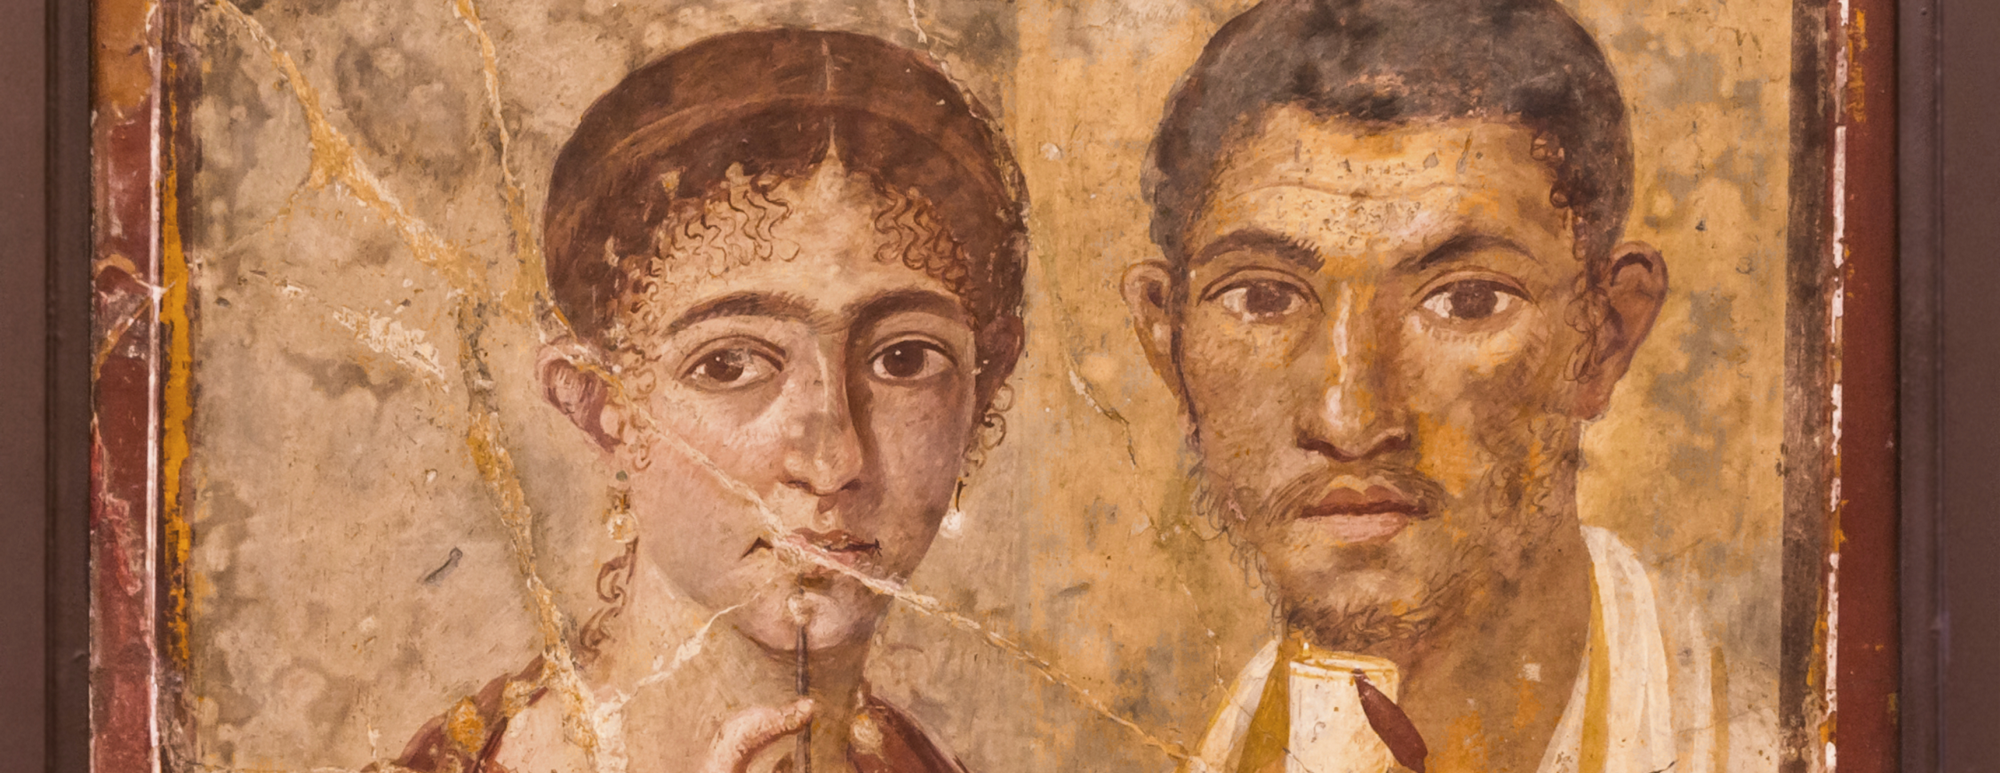 Why I Teach About Race And Ethnicity In The Classical World